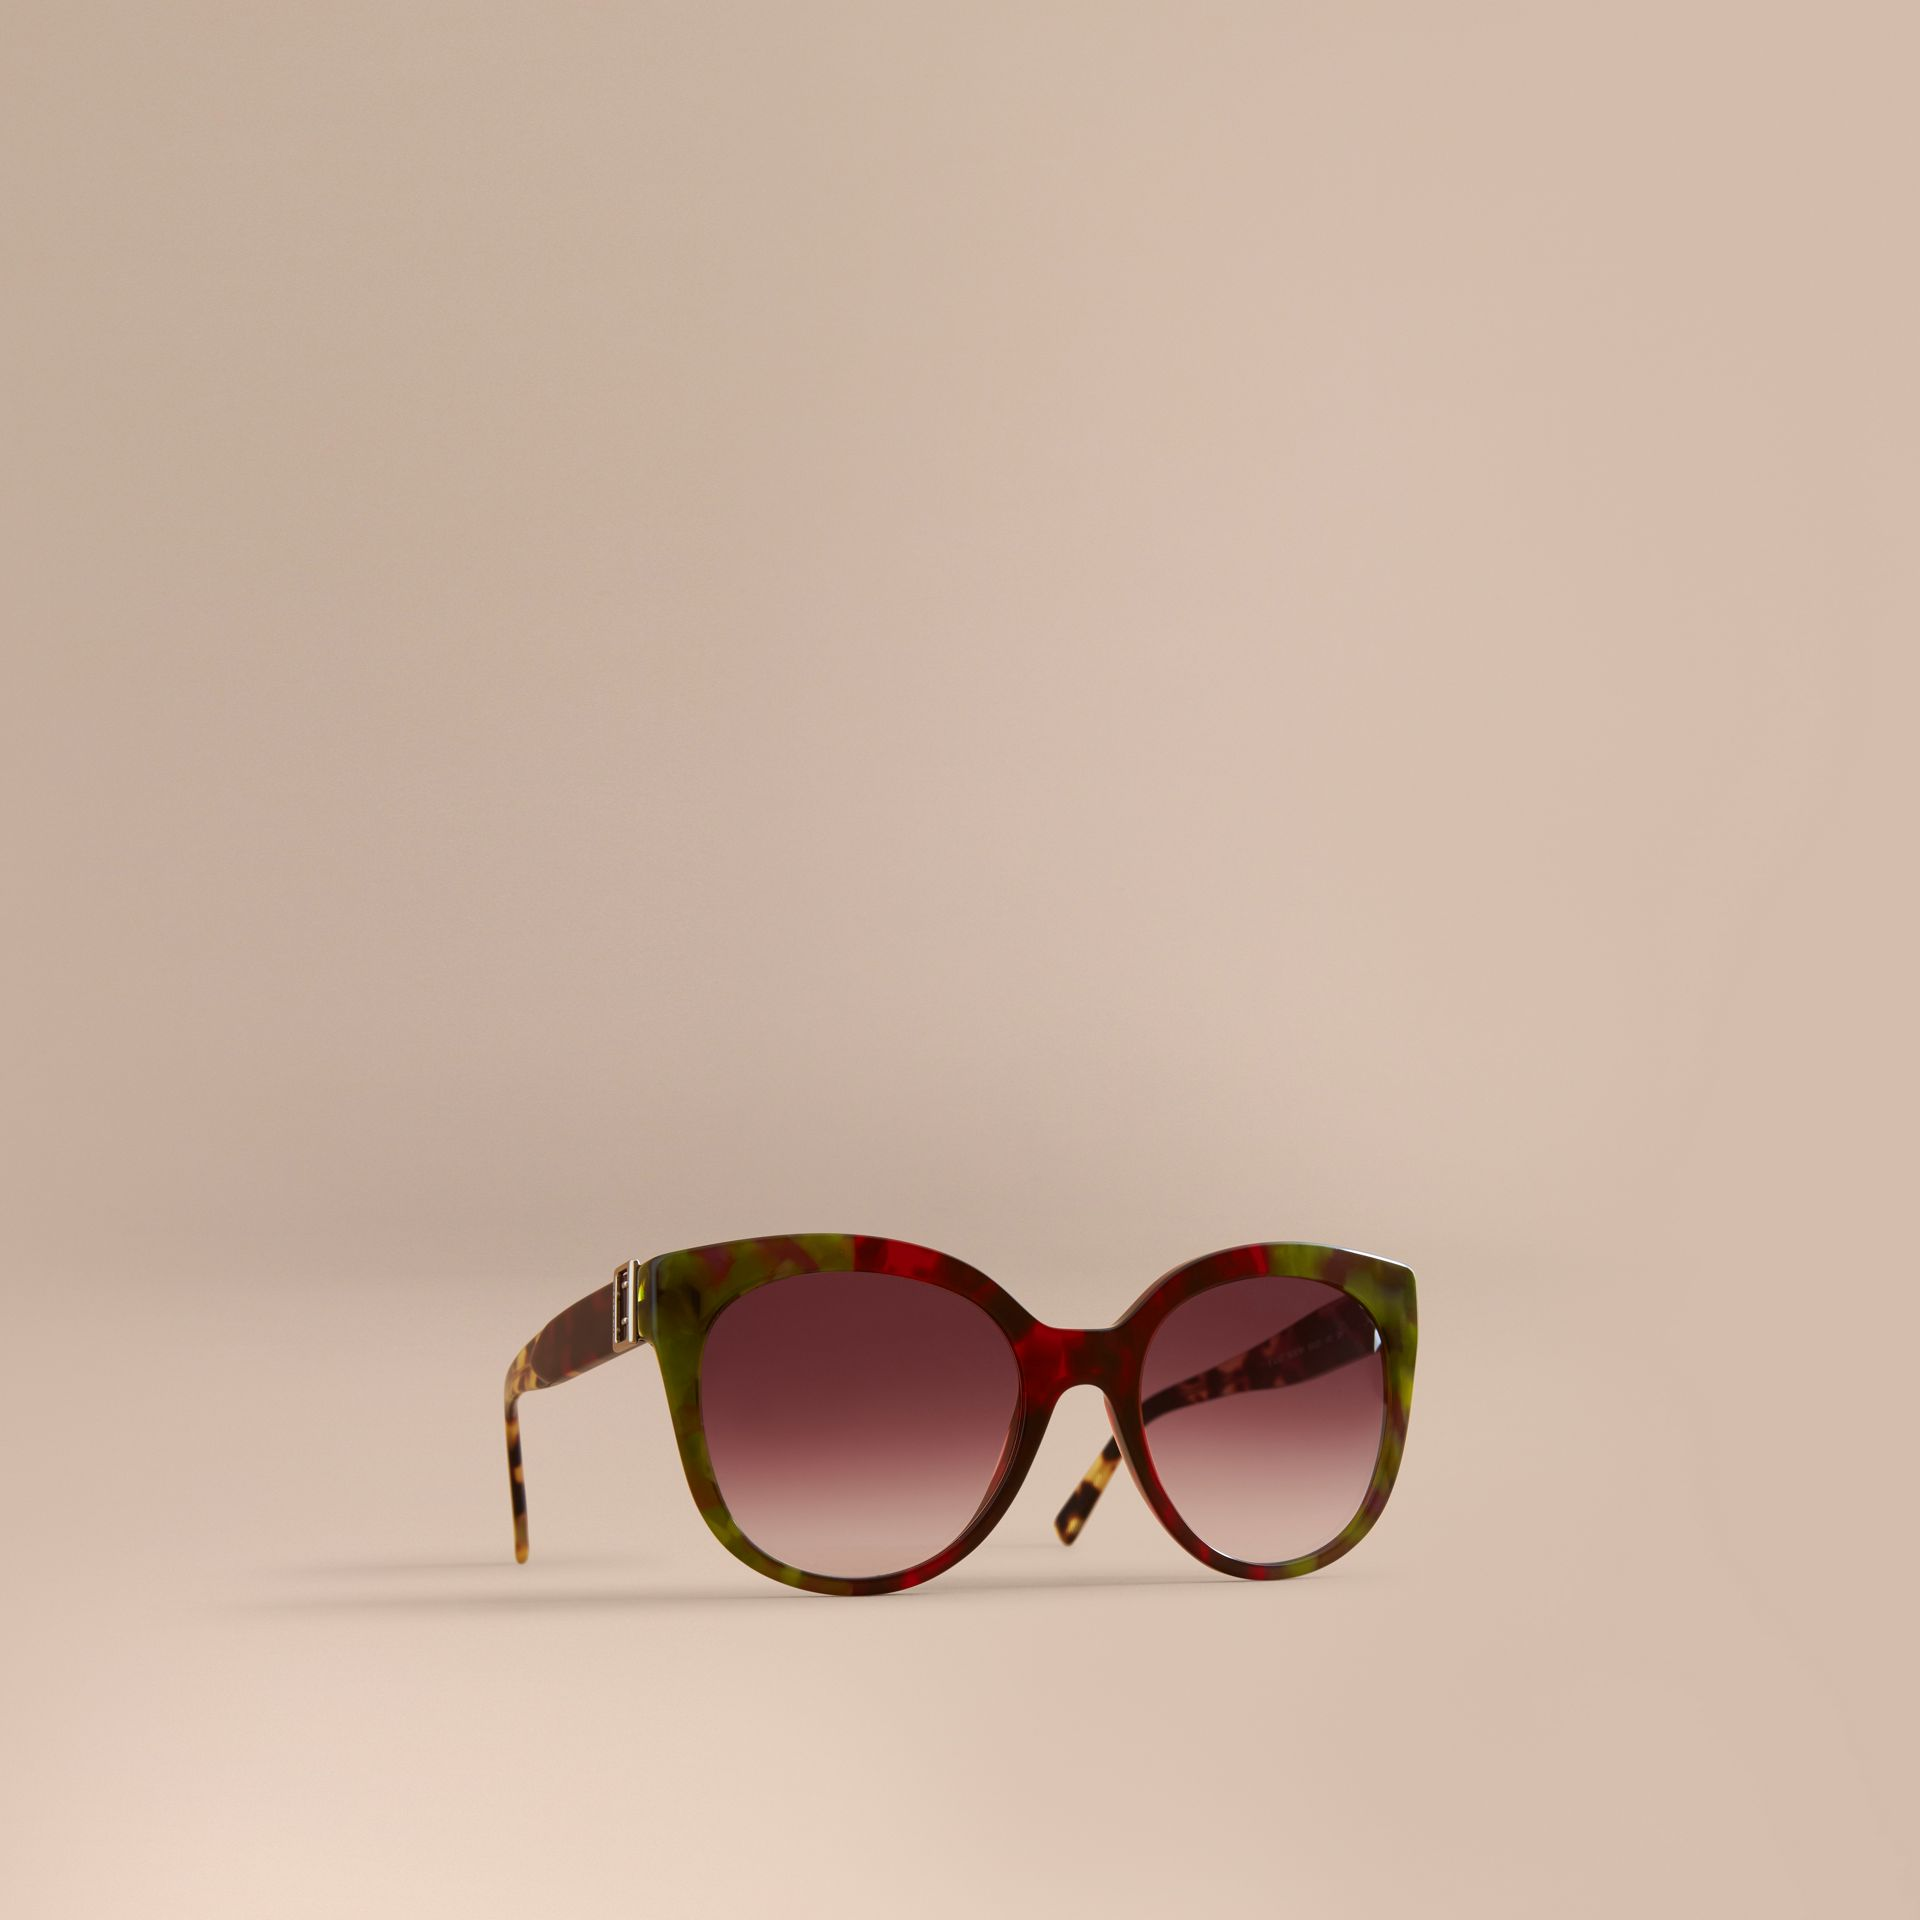 Buckle Detail Cat-eye Frame Sunglasses in Cardinal Red - Women | Burberry Canada - gallery image 0